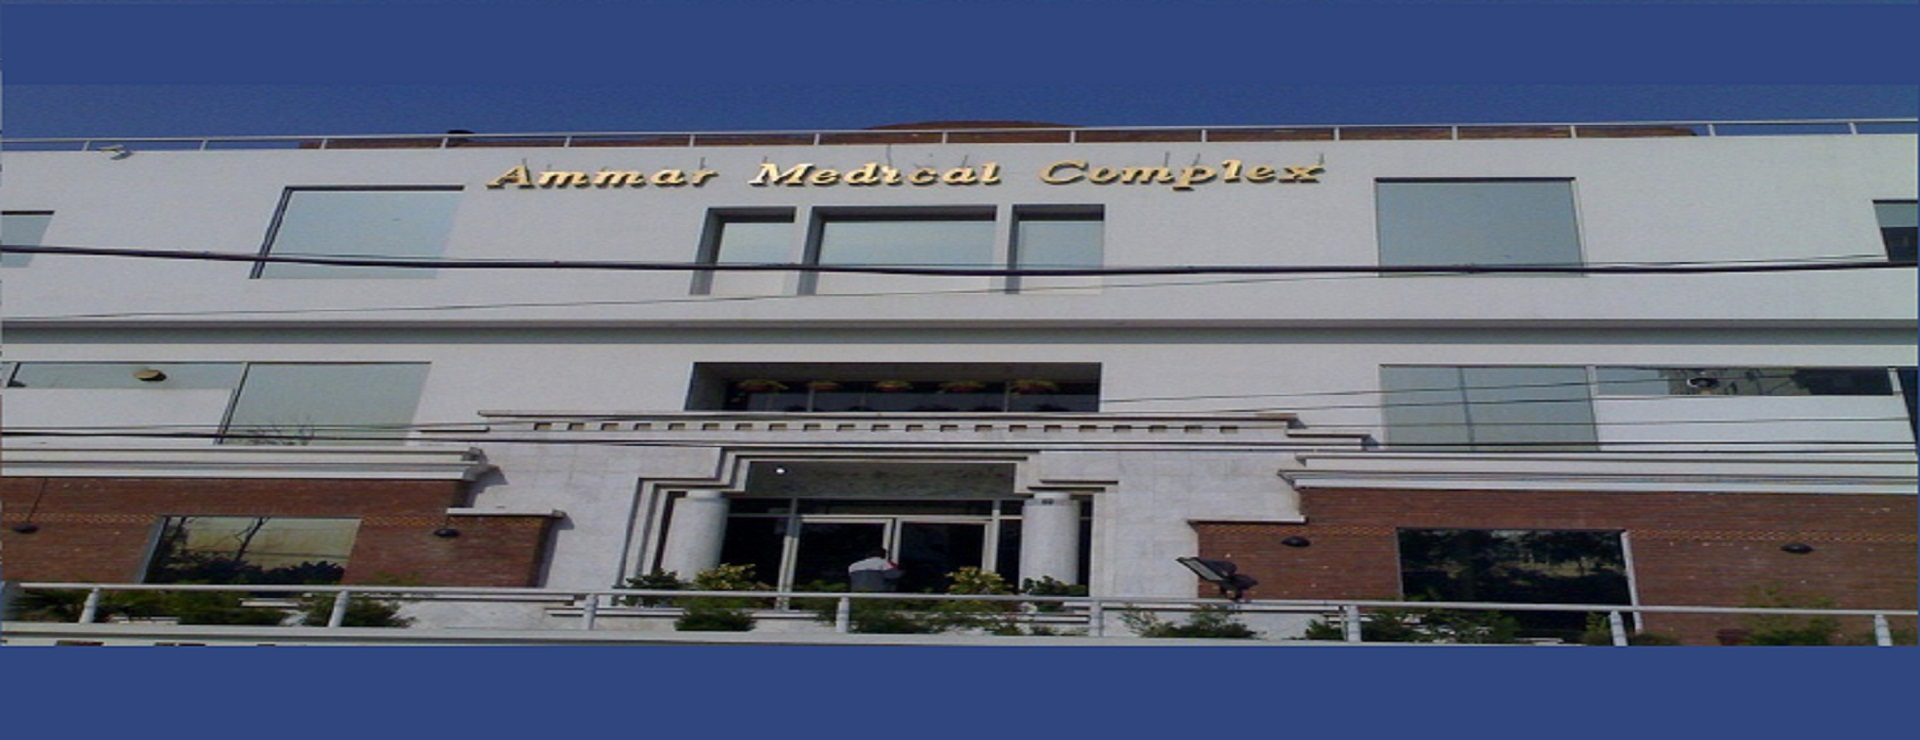 Ammar medical complex cover